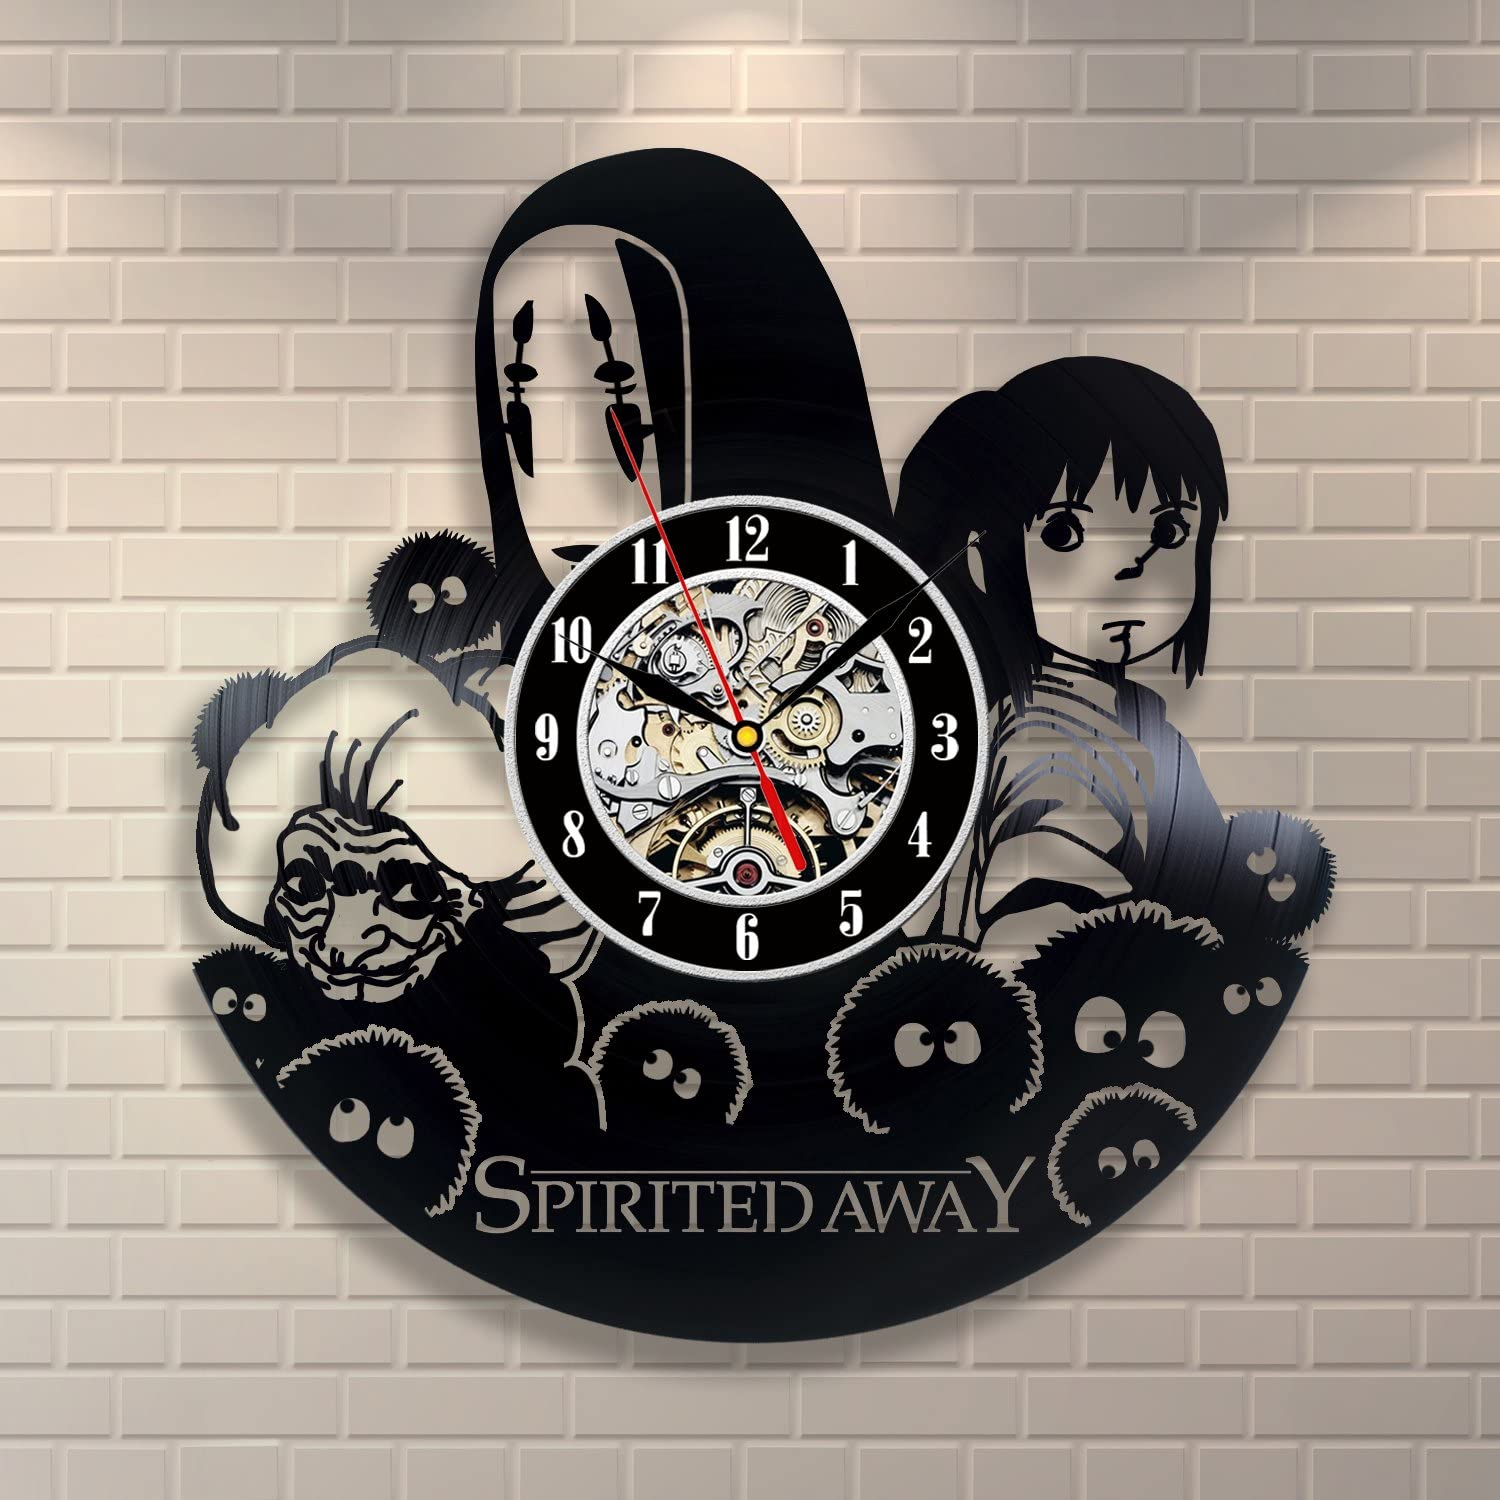 Amazon Com Spirited Away Anime Movie Vintage Office Decor Vinyl Record Wall Clock Wedding Home Kitchen